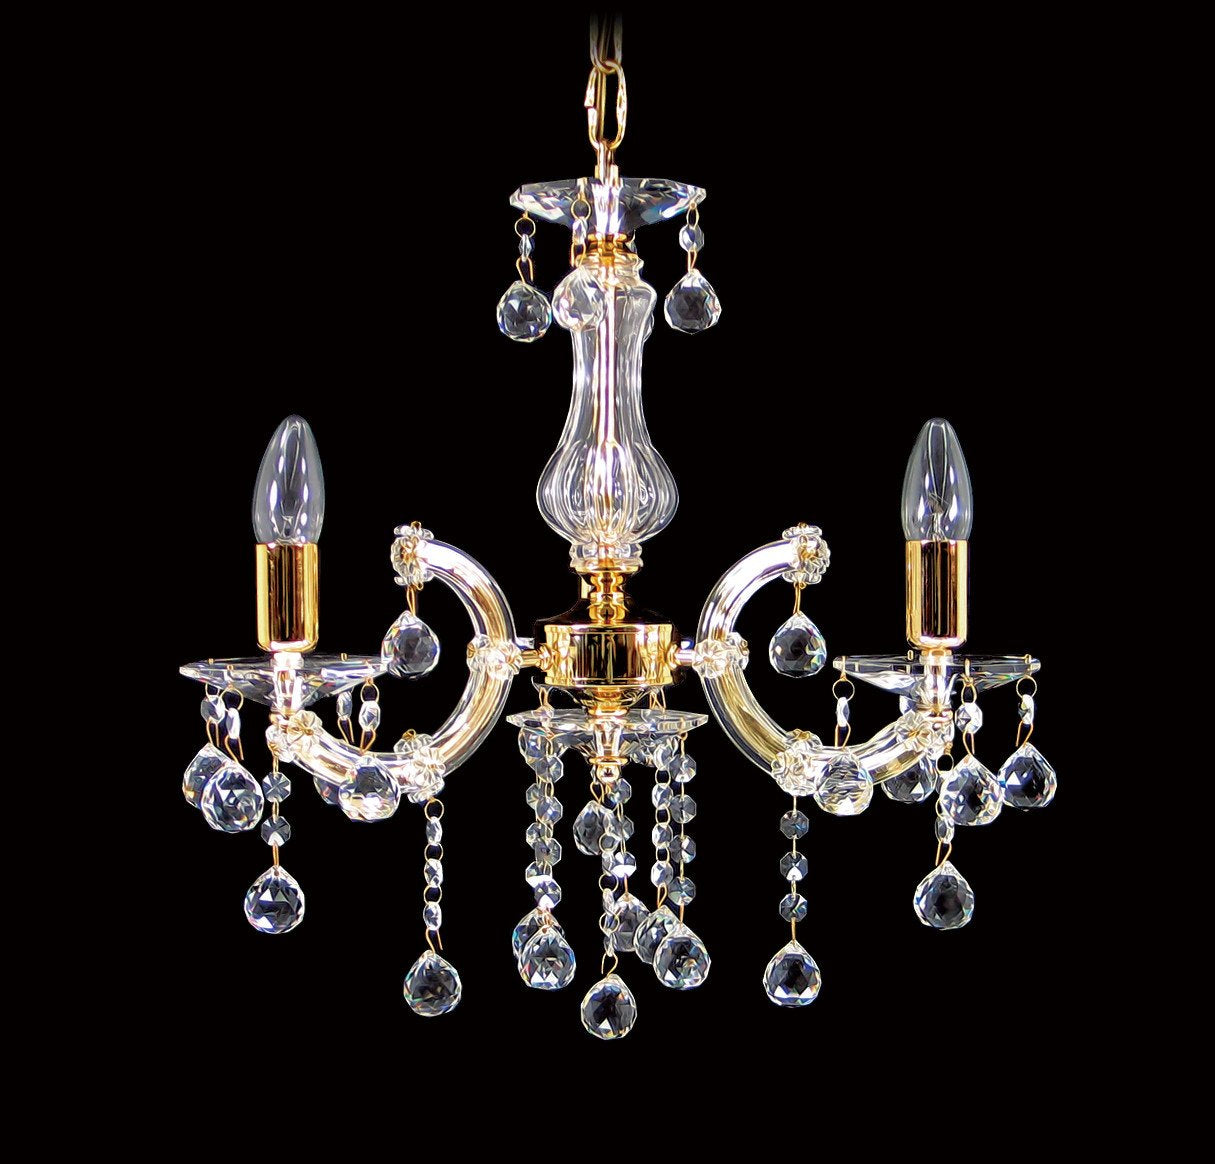 6610 crystal pendant light 18 3 light gold asfour crystal 6610 crystal pendant light 18 3 light gold asfour crystal chandelier 6610 3l 1036 30mm aloadofball